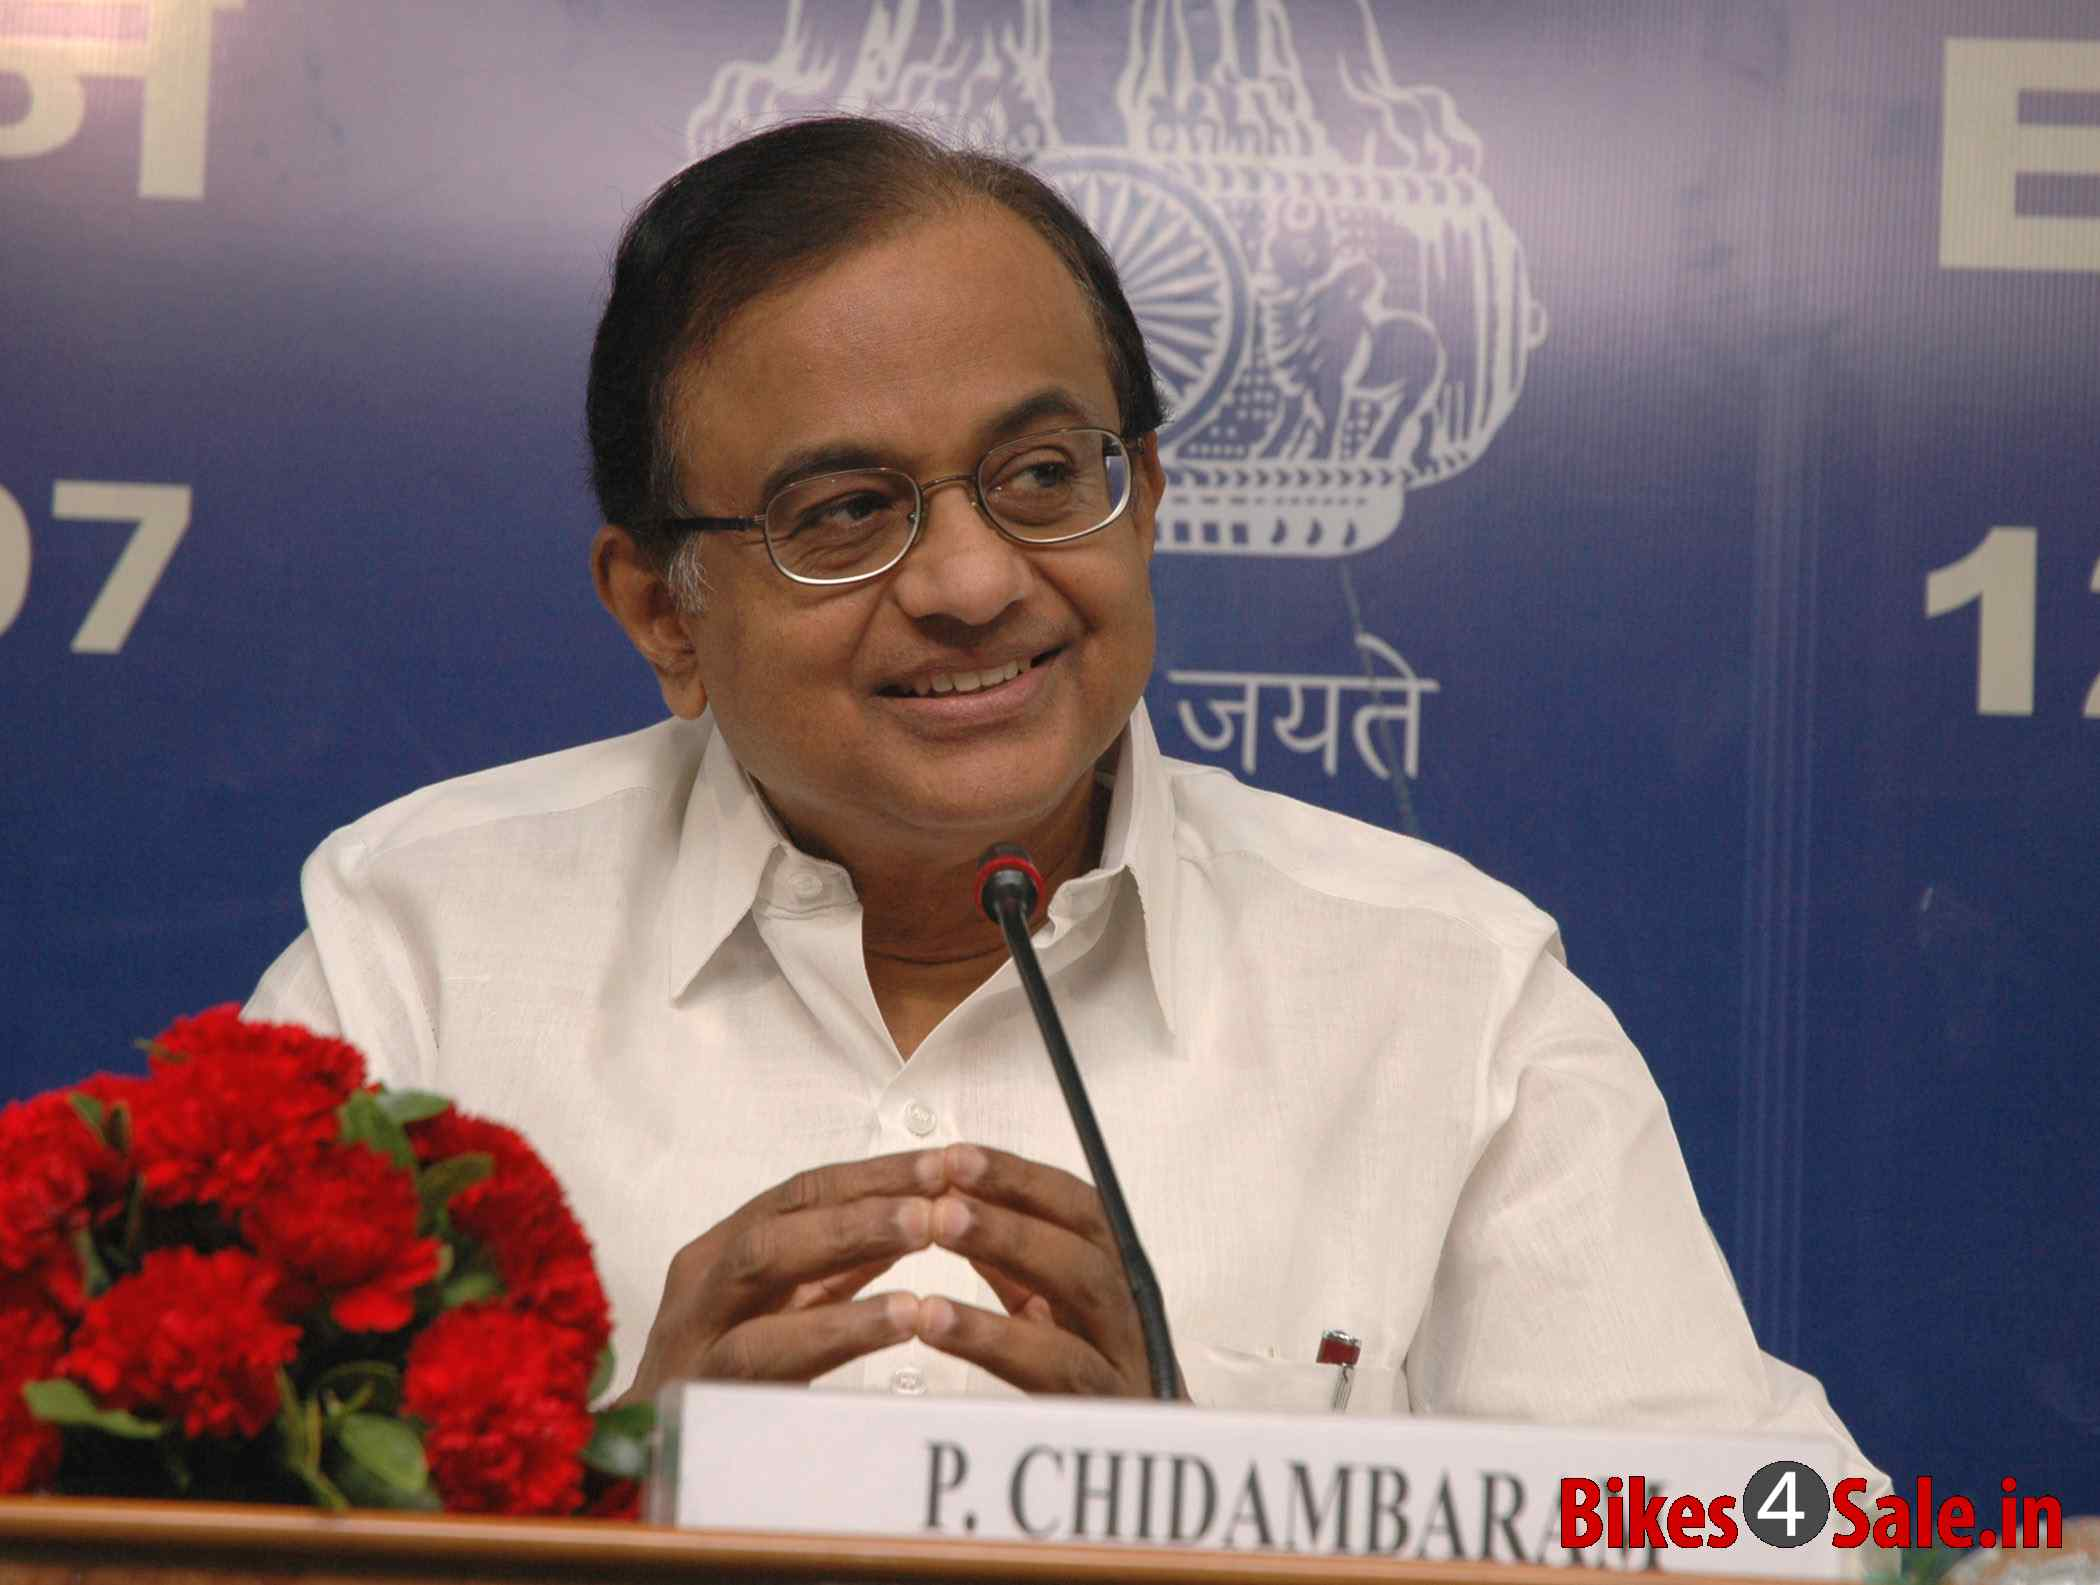 Union Finance Minister India, P. Chidambaram